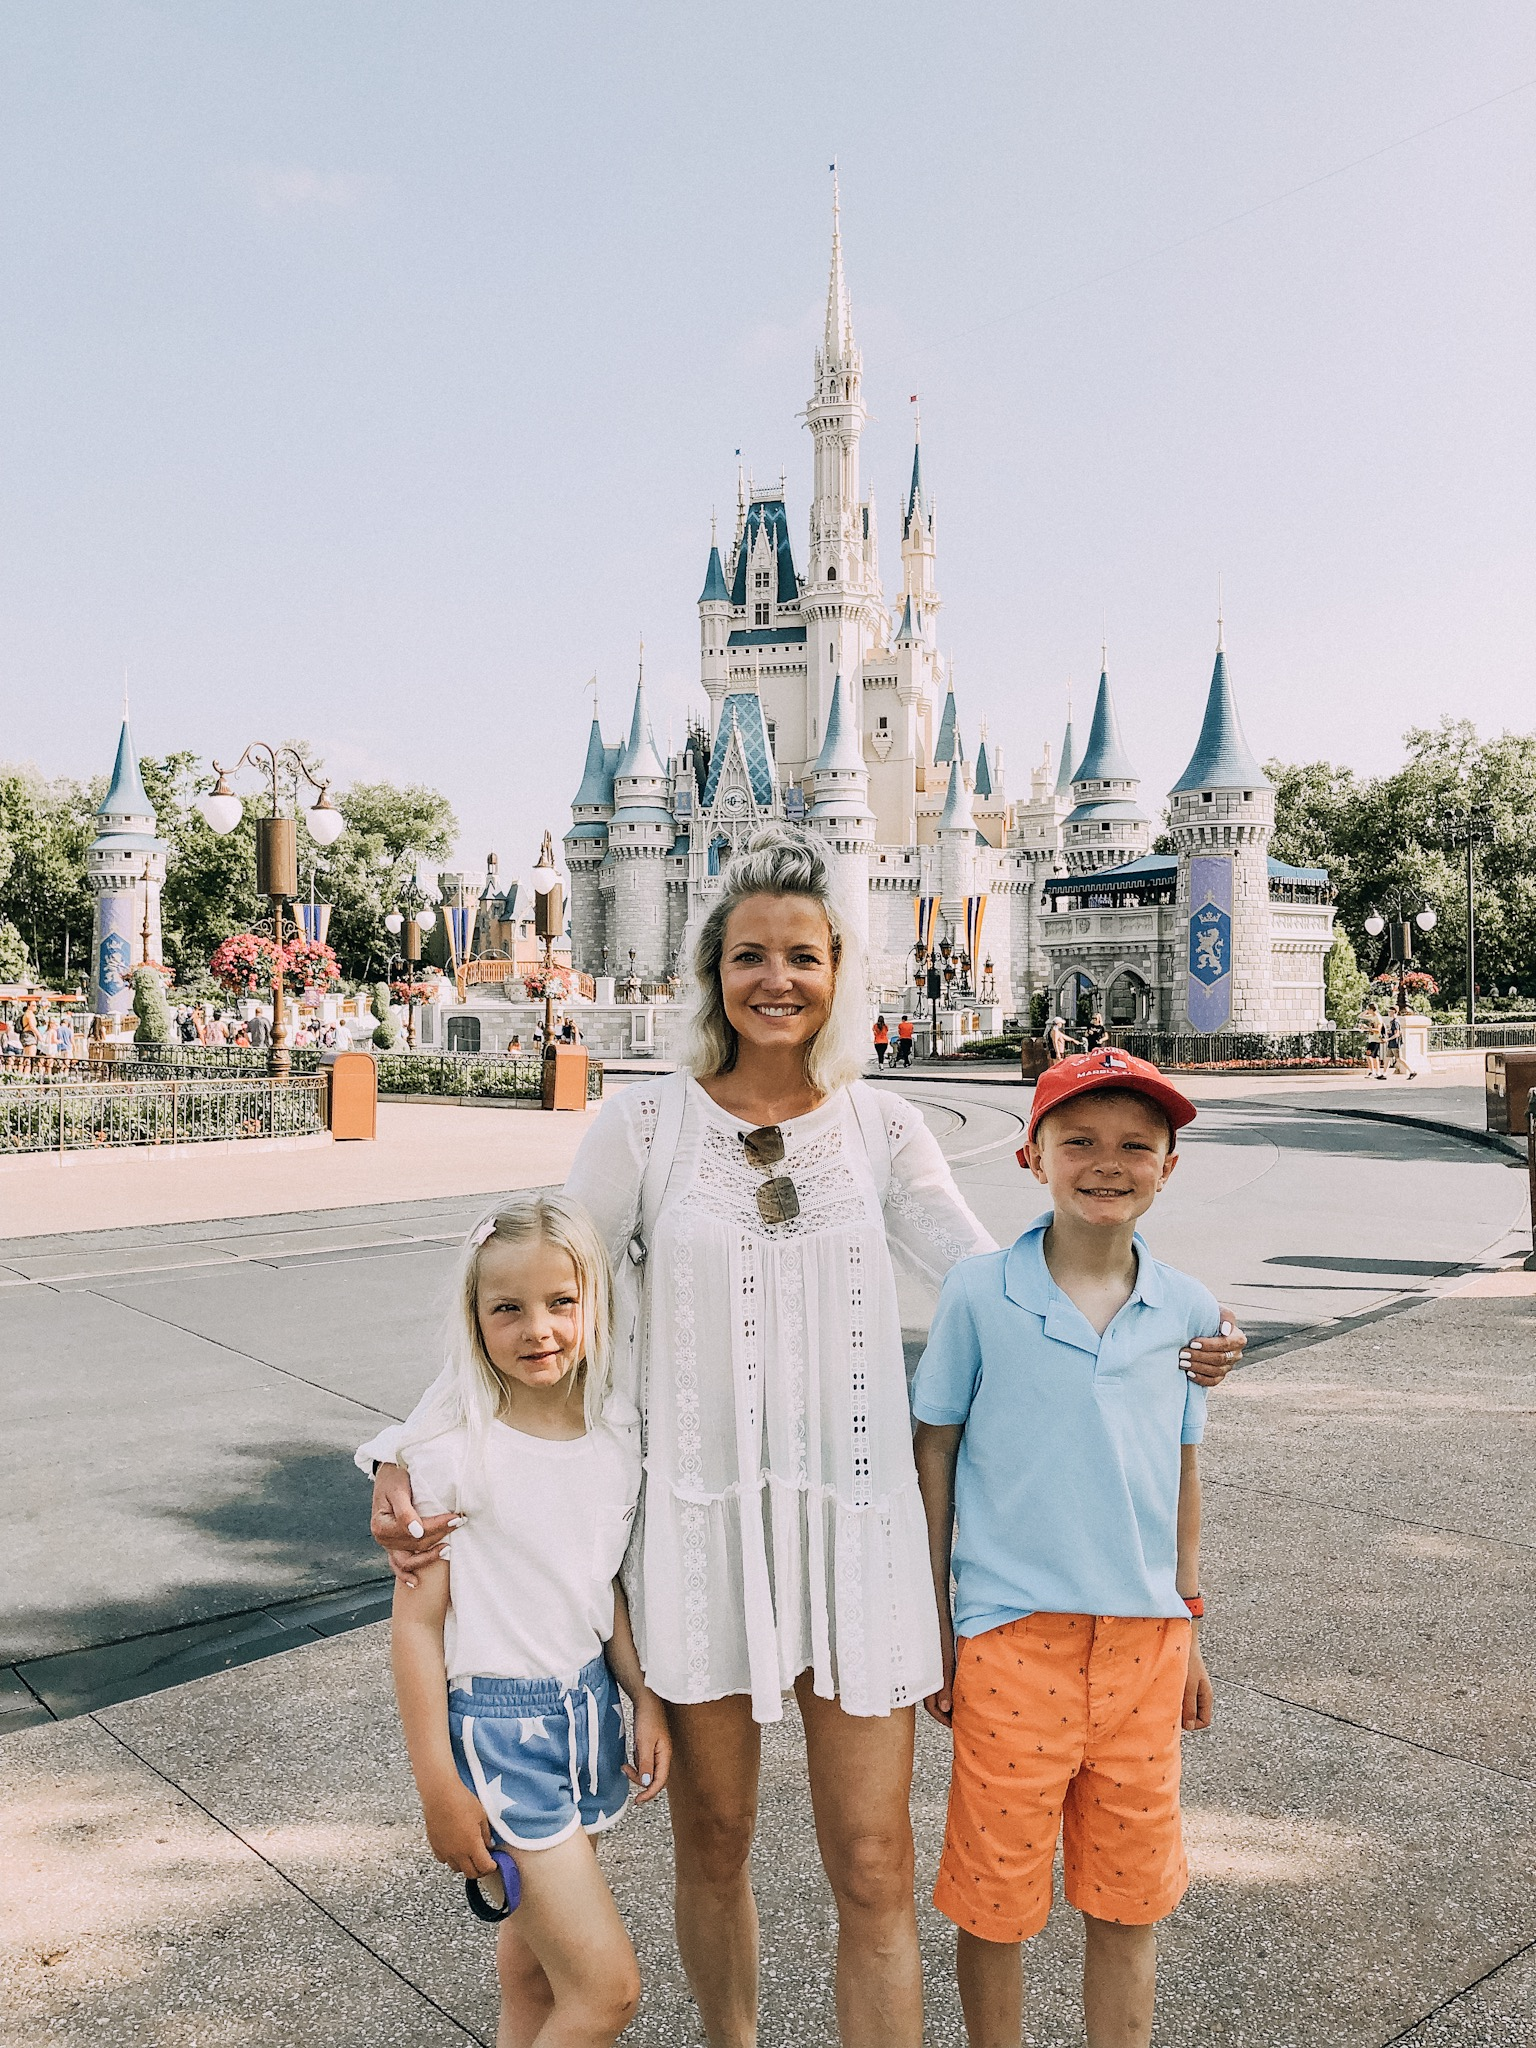 What I Wore At Disney, Fashion blogger Erin Busbee of BusbeeStyle.com wearing a Free People tunic top and denim shorts at Walt Disney World